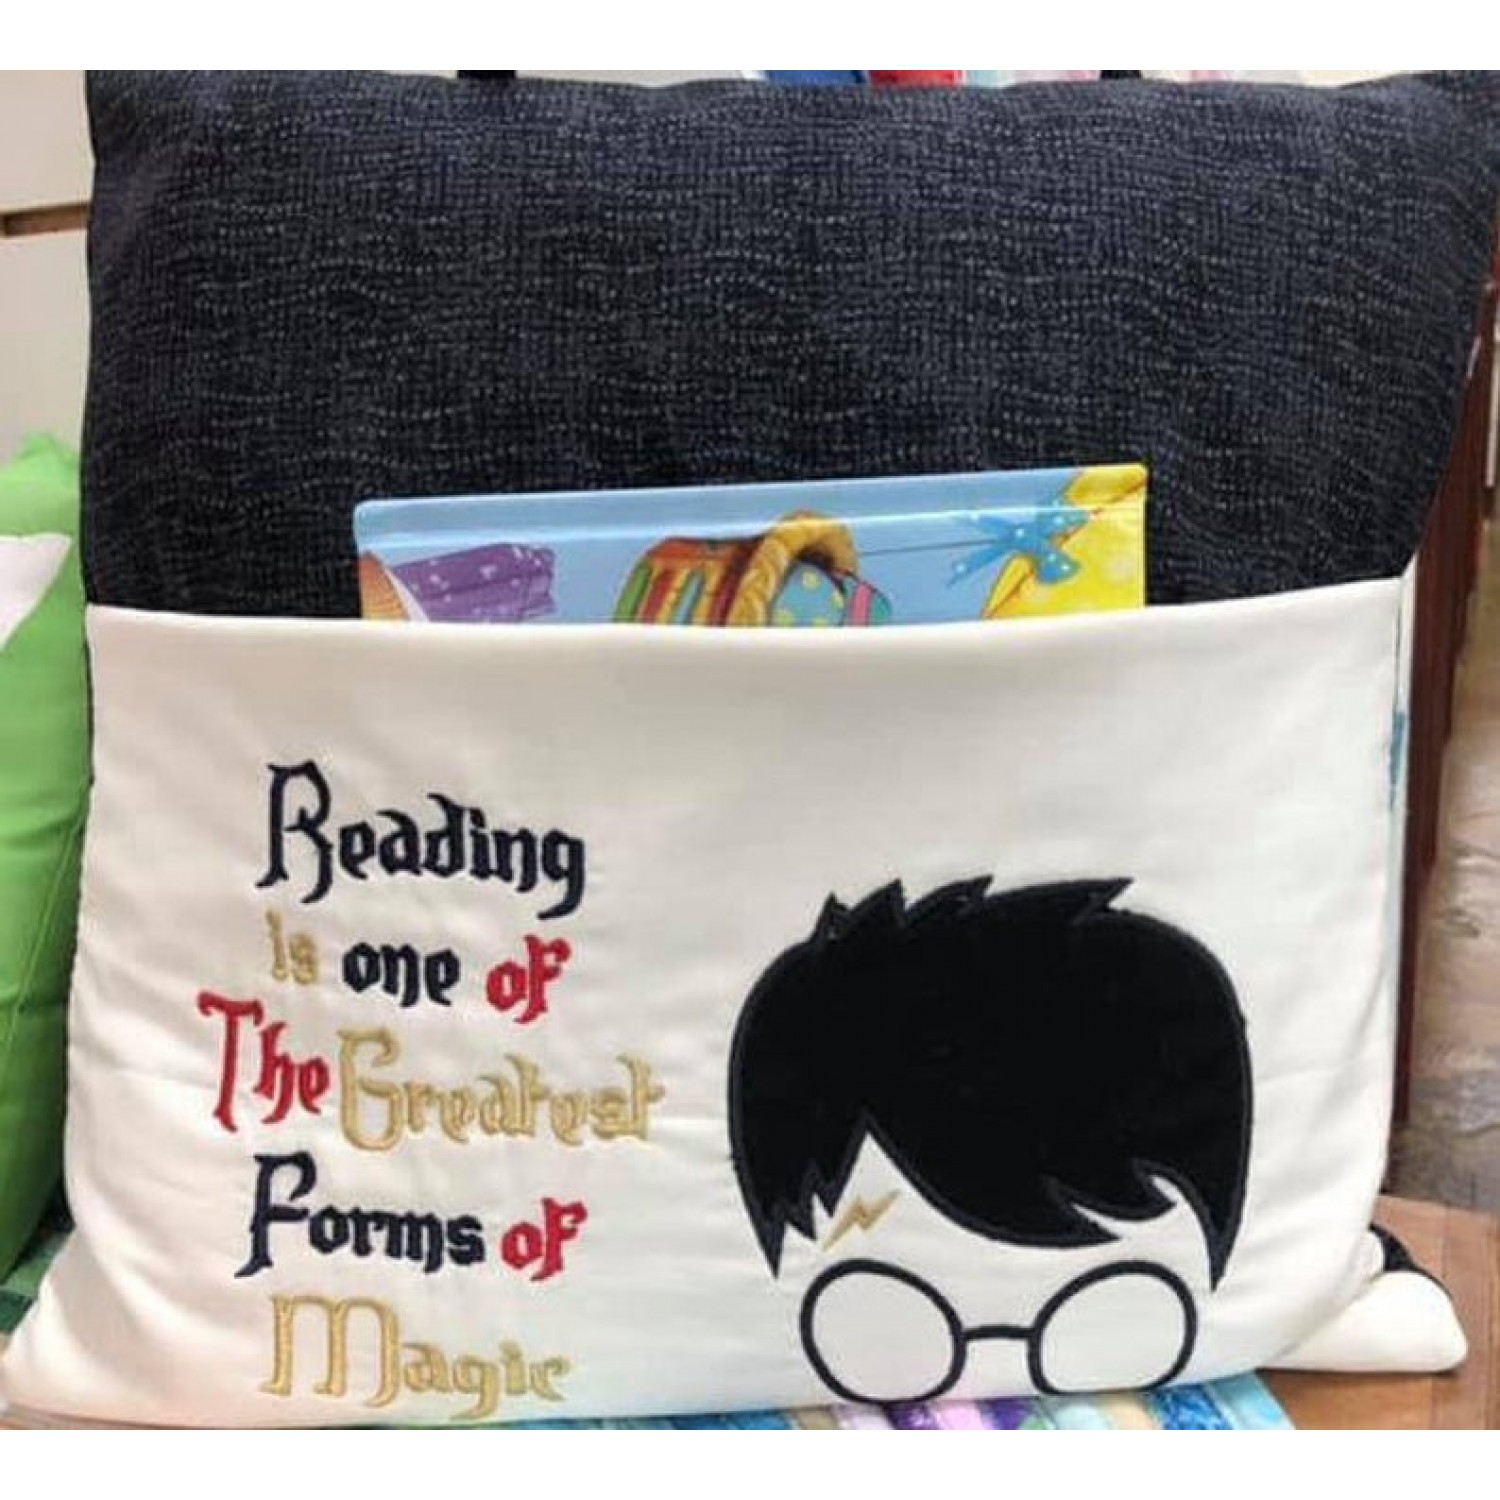 Harry Potter Face with Reading is one